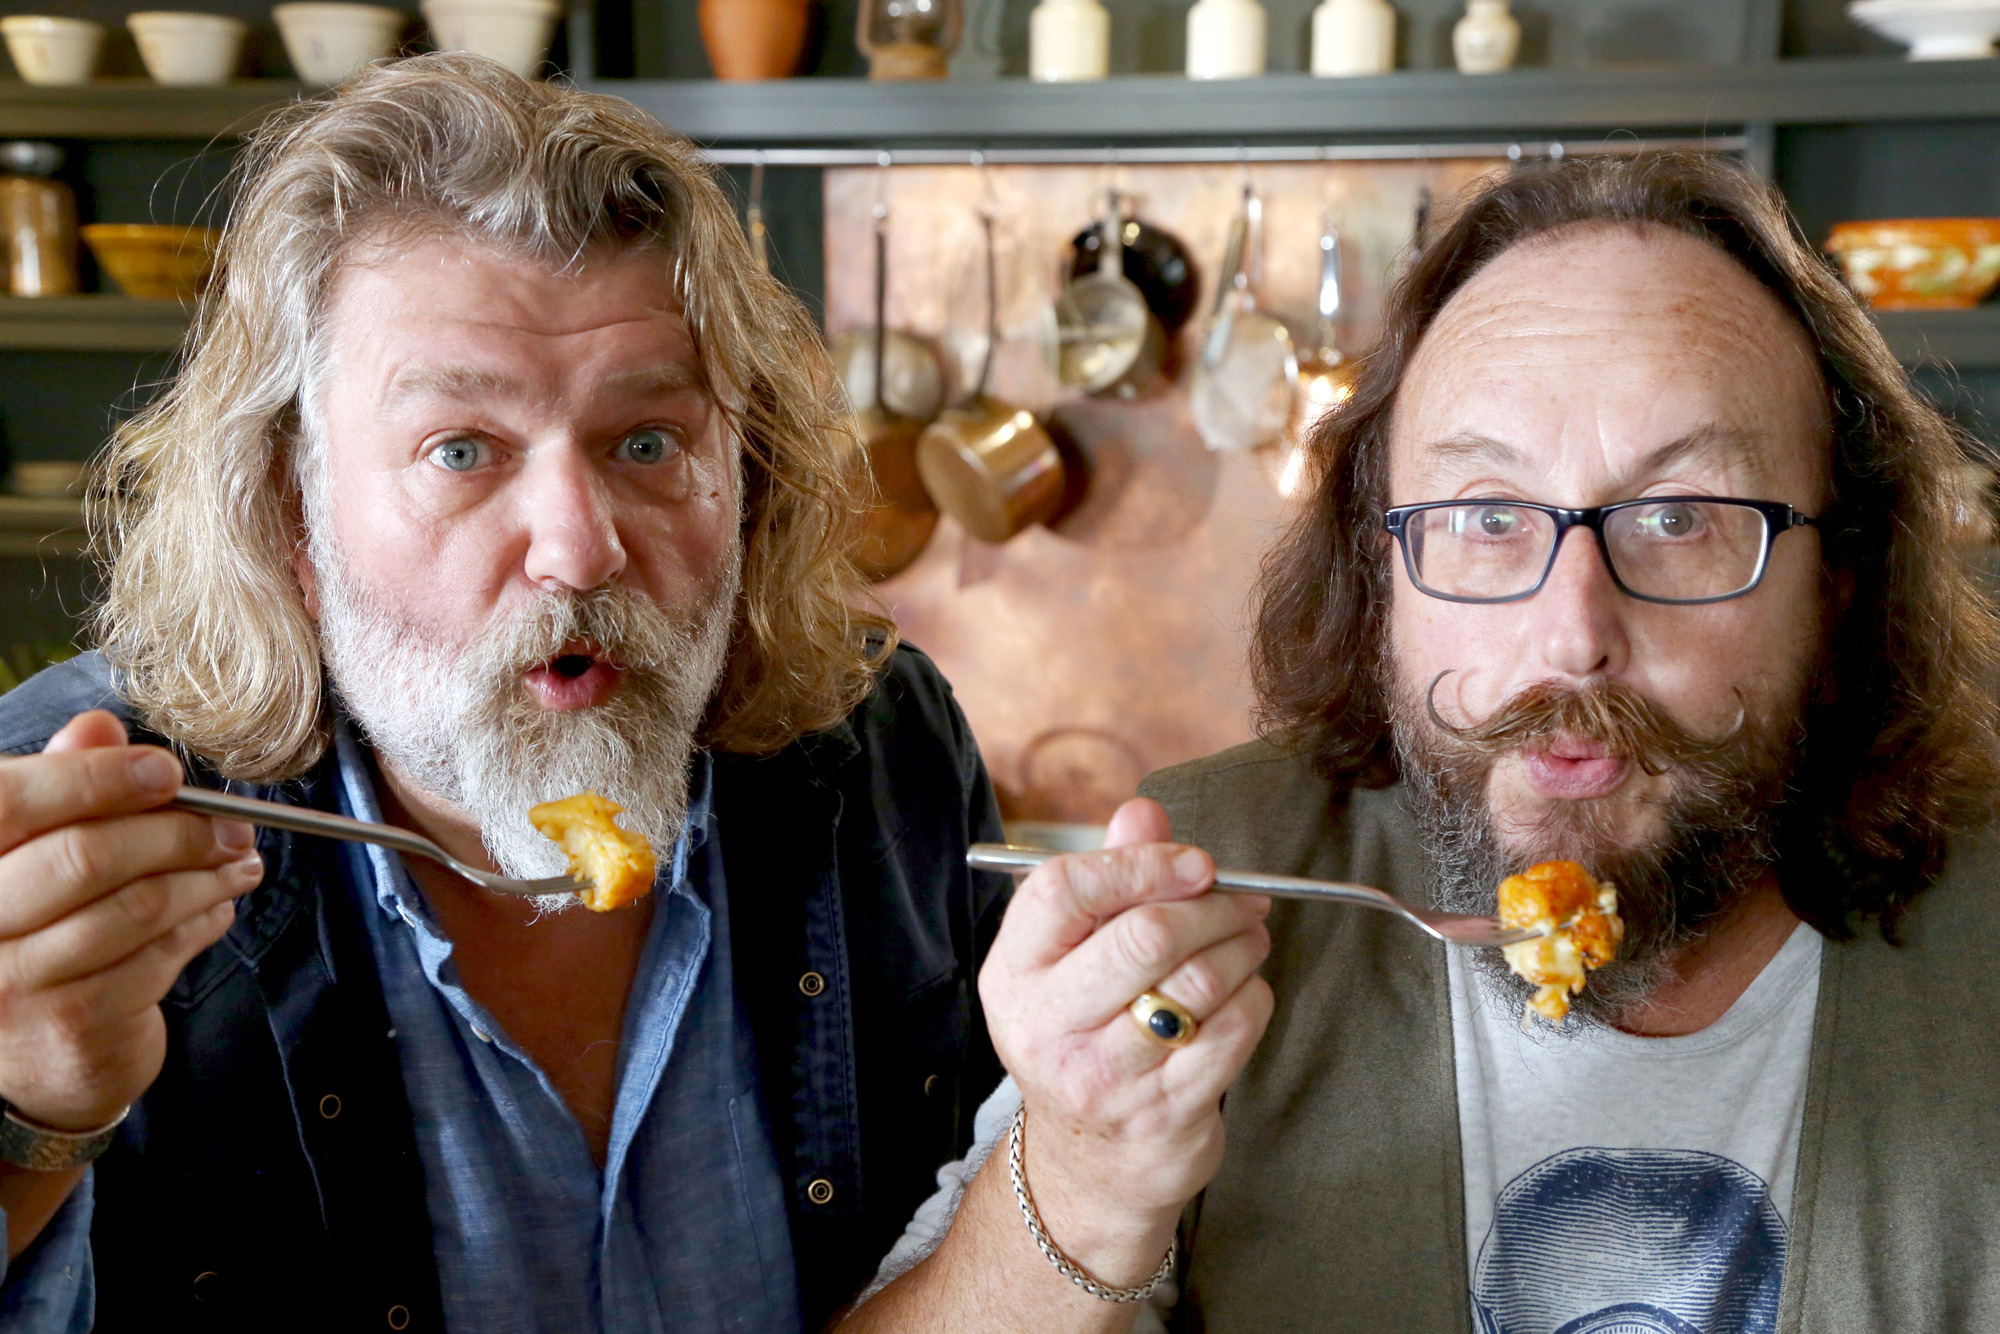 Hairy Bikers Si King and Dave Myers have some delicious curry recipes (Hungry Gap Productions)